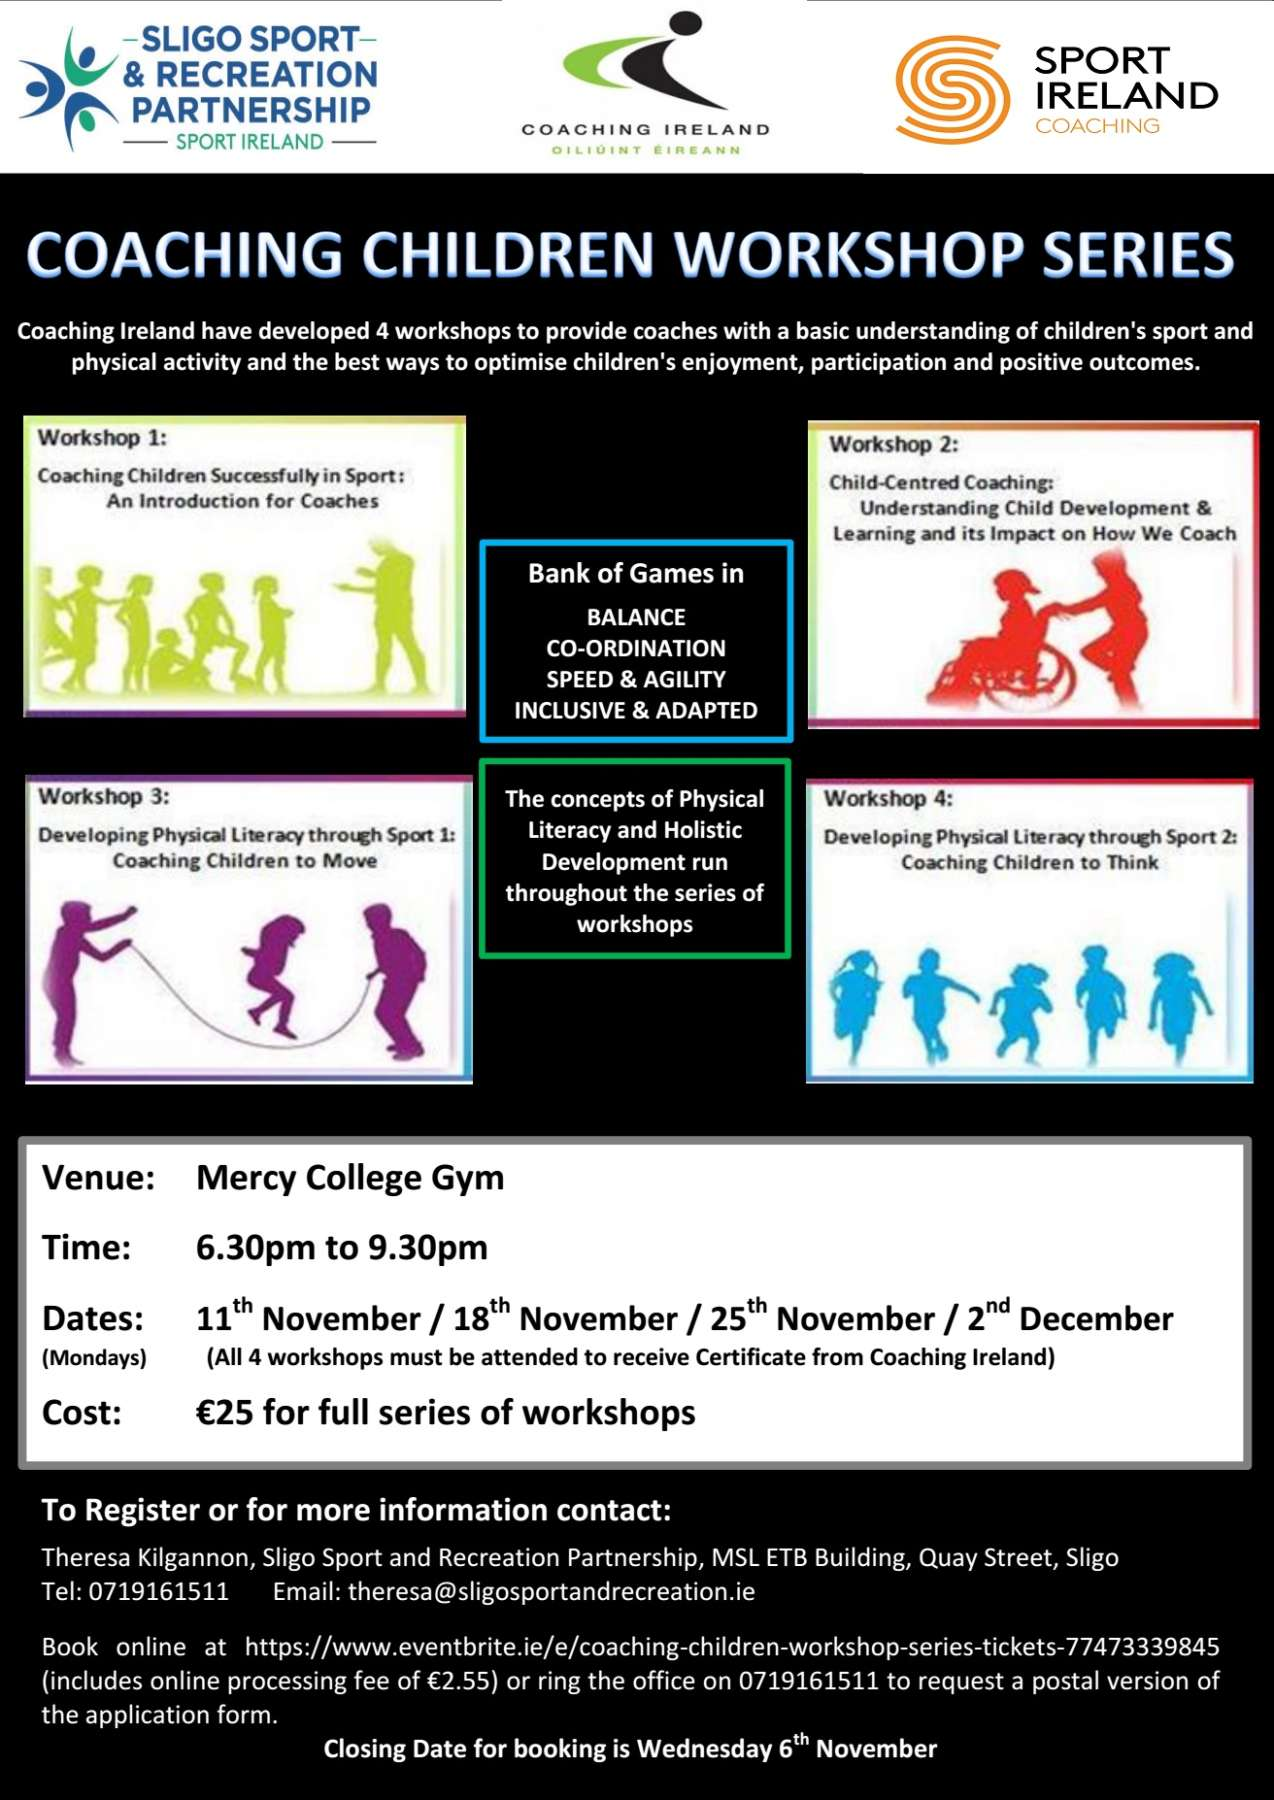 Coaching Children Workshop Series